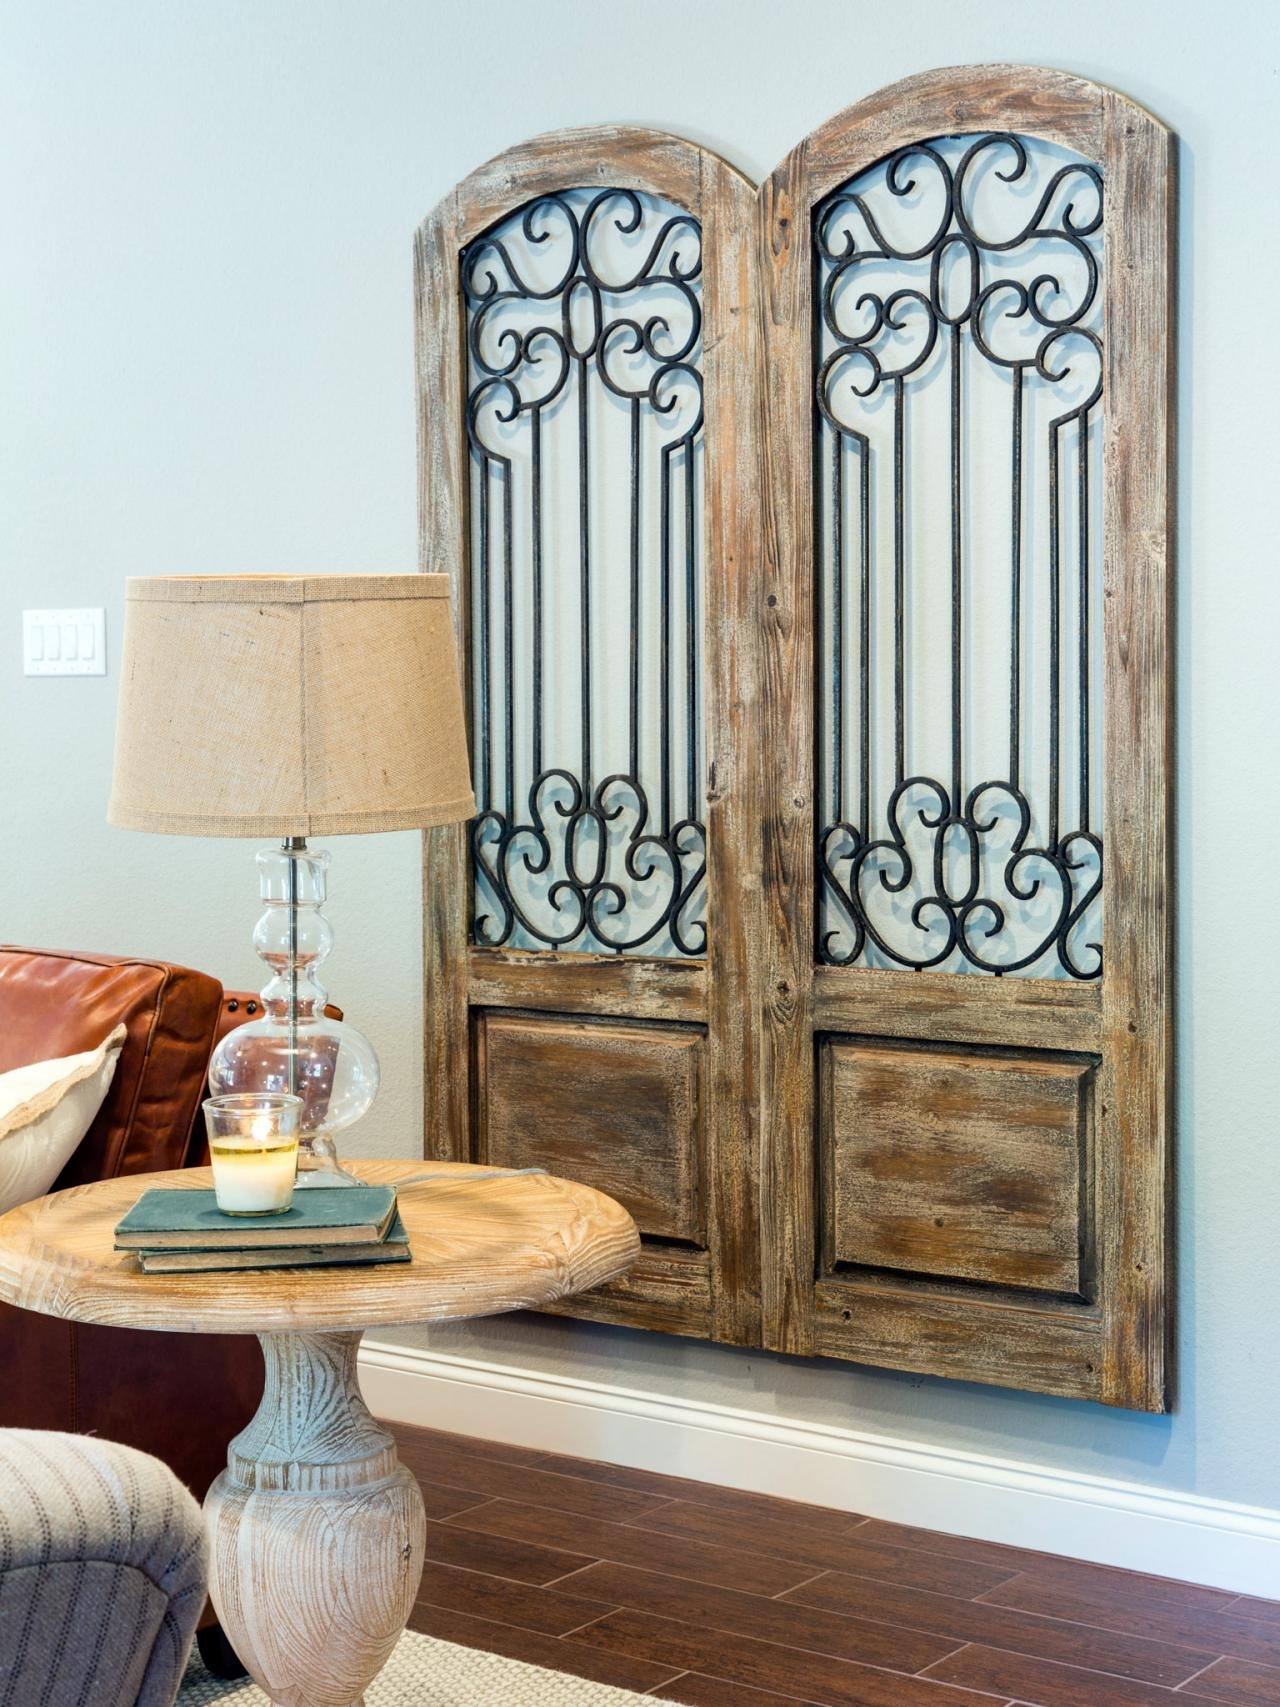 Fill Your Walls With 'fixer Upper' Inspired Artwork: 11 Easy To Pertaining To Most Up To Date Architectural Wall Accents (View 8 of 15)